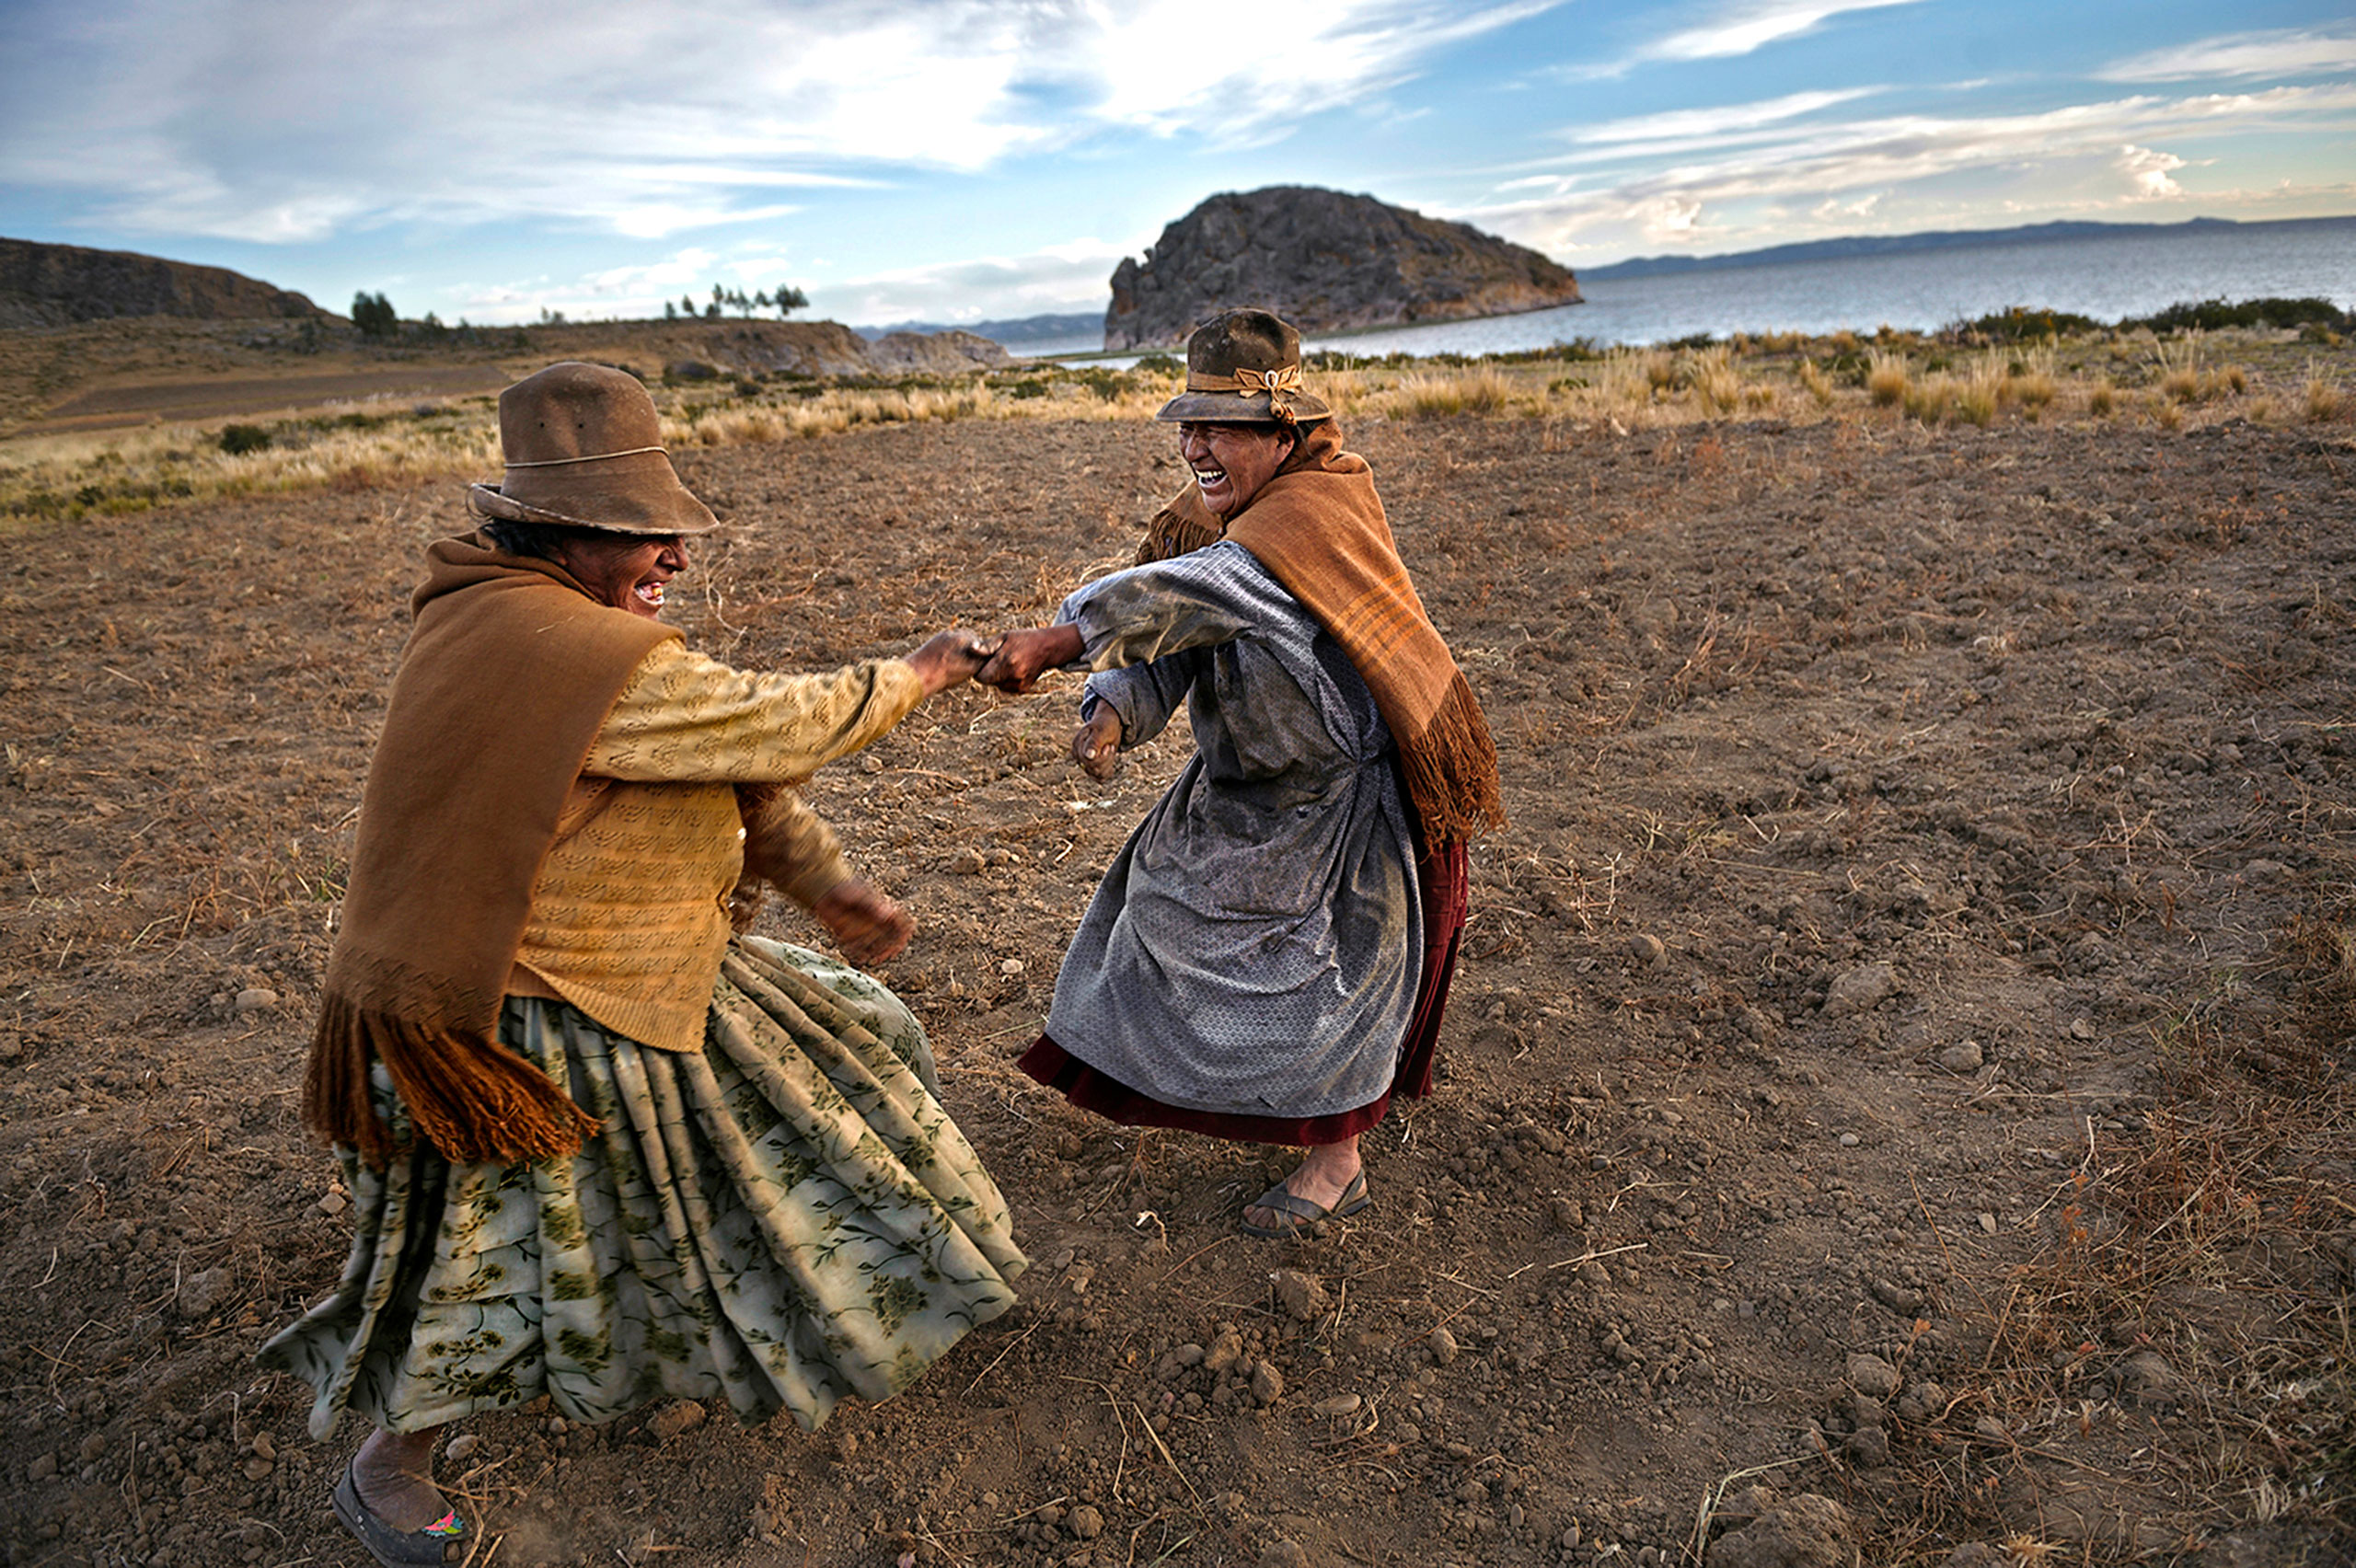 Dominga Illari, 70, left, and Manuela Quispe Avile, 70, right, dance after harvesting potatoes. Avile is the owner of the land and Illari works for her in exchange for food to eat, not money in Santiago de Okola, Bolivia.